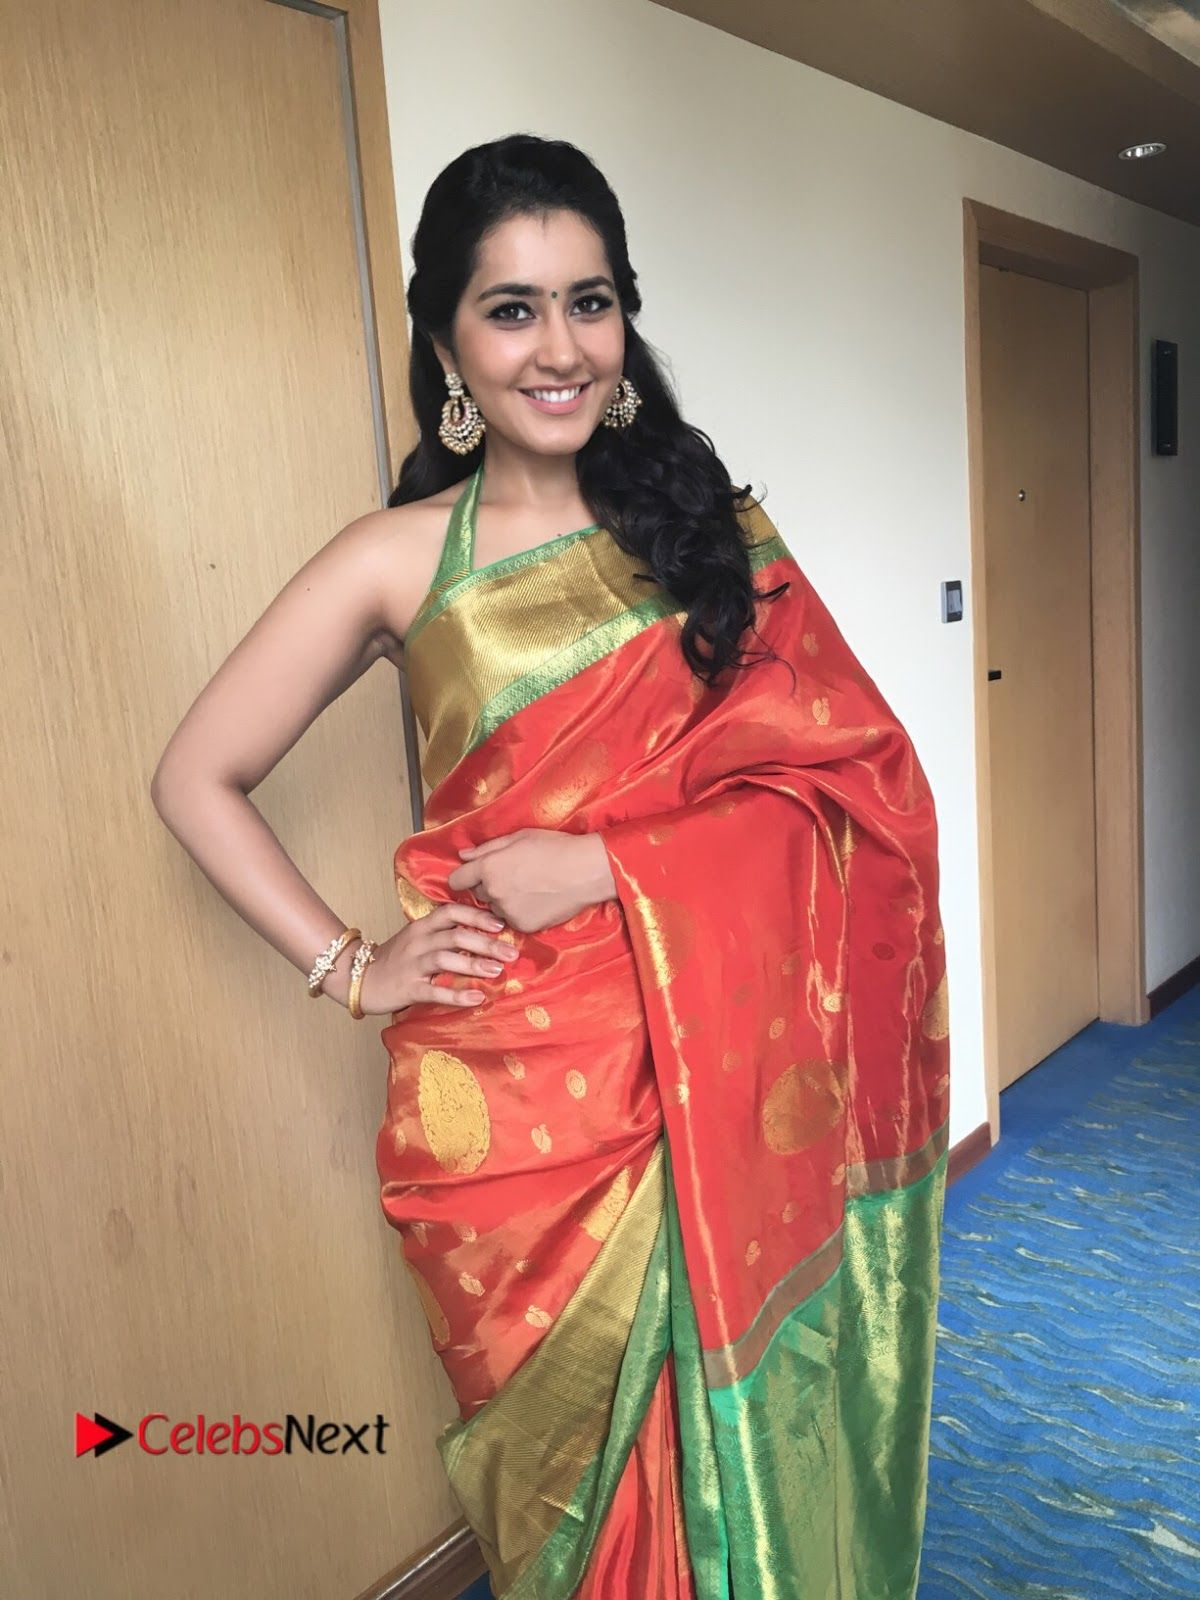 Pin by singh khalsa on style splendour in sarees pinterest raashi khanna latest images in saree with sleeveless blouse looking sexy the hot images of raasi khanna in red saree checkout here spicy photos altavistaventures Gallery